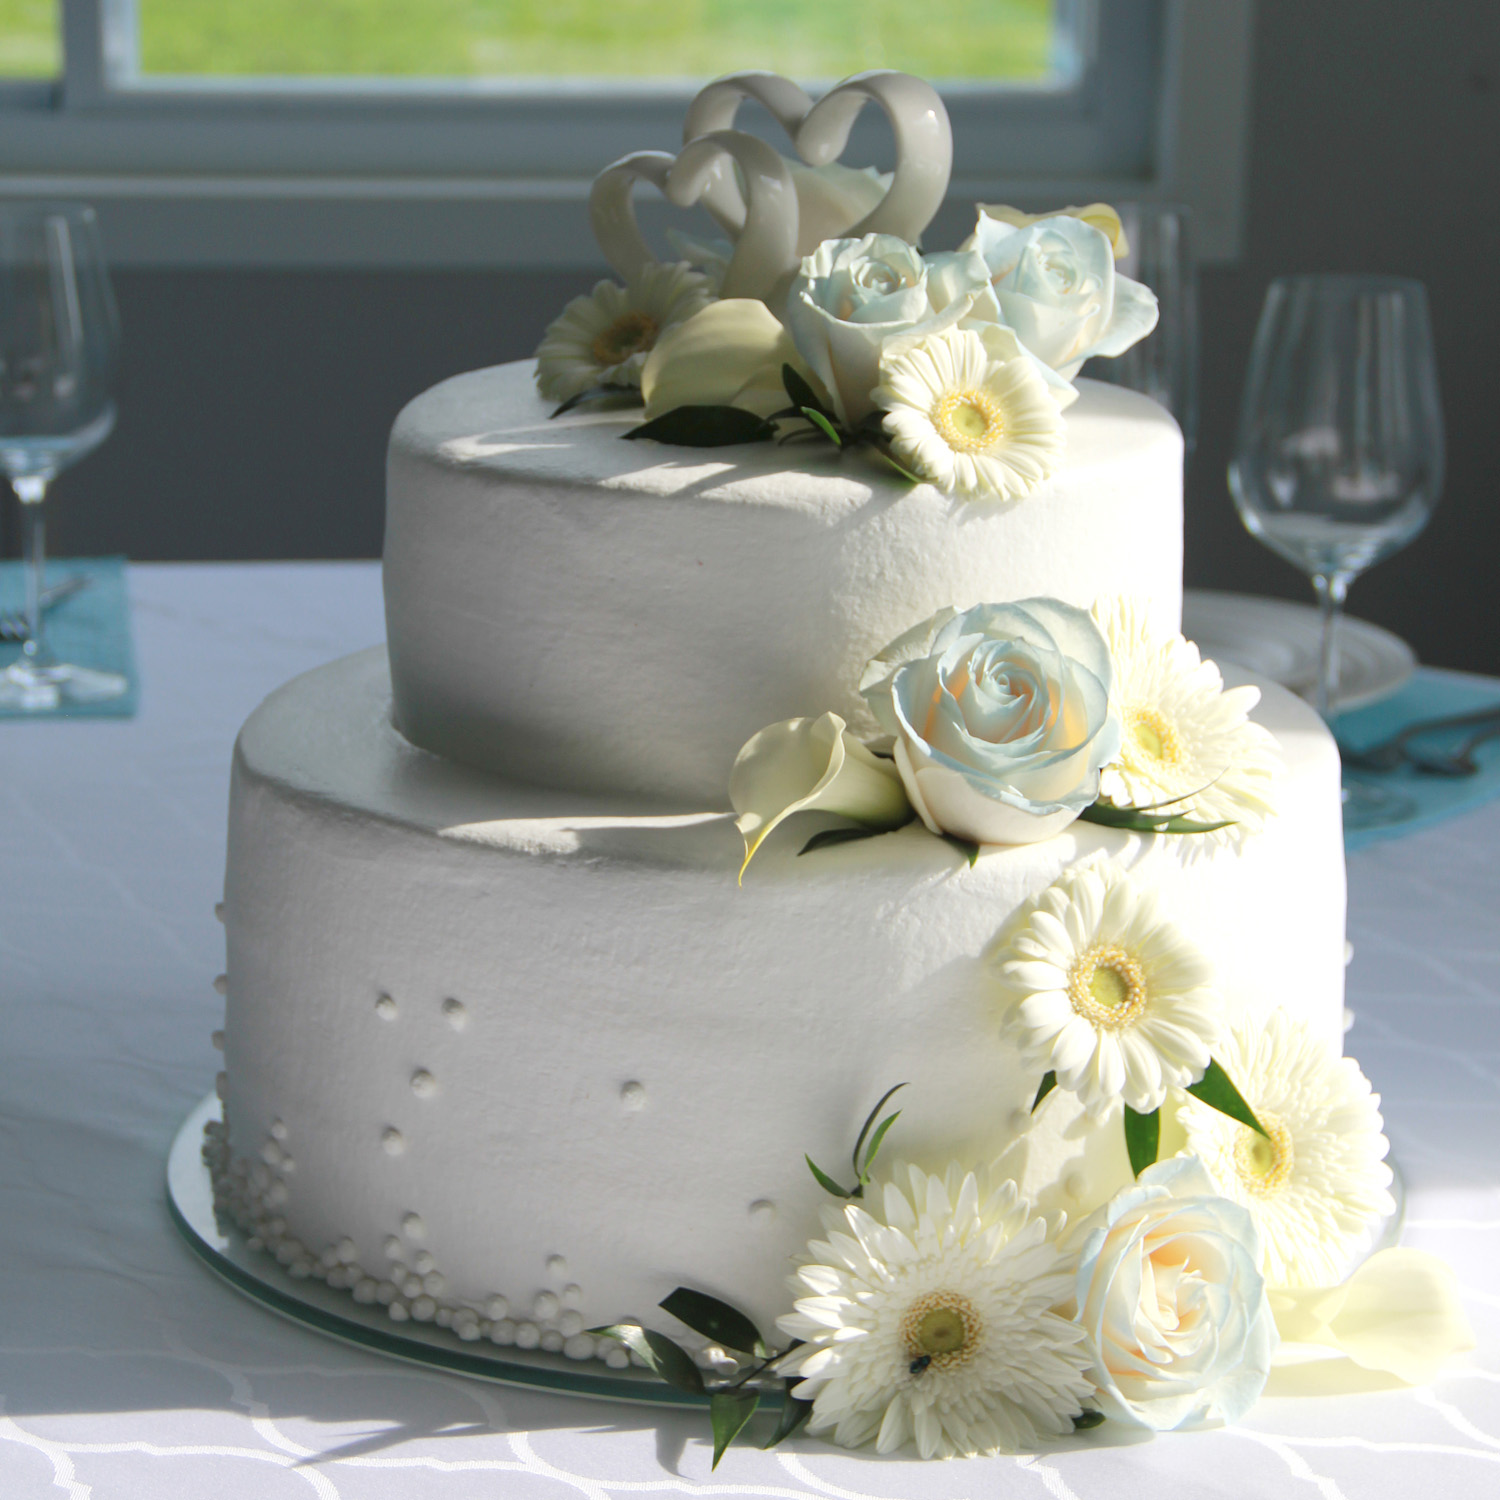 Amish Wedding Cake White Flowers-Middlefield Ohio-Flowers by Emily.JPG